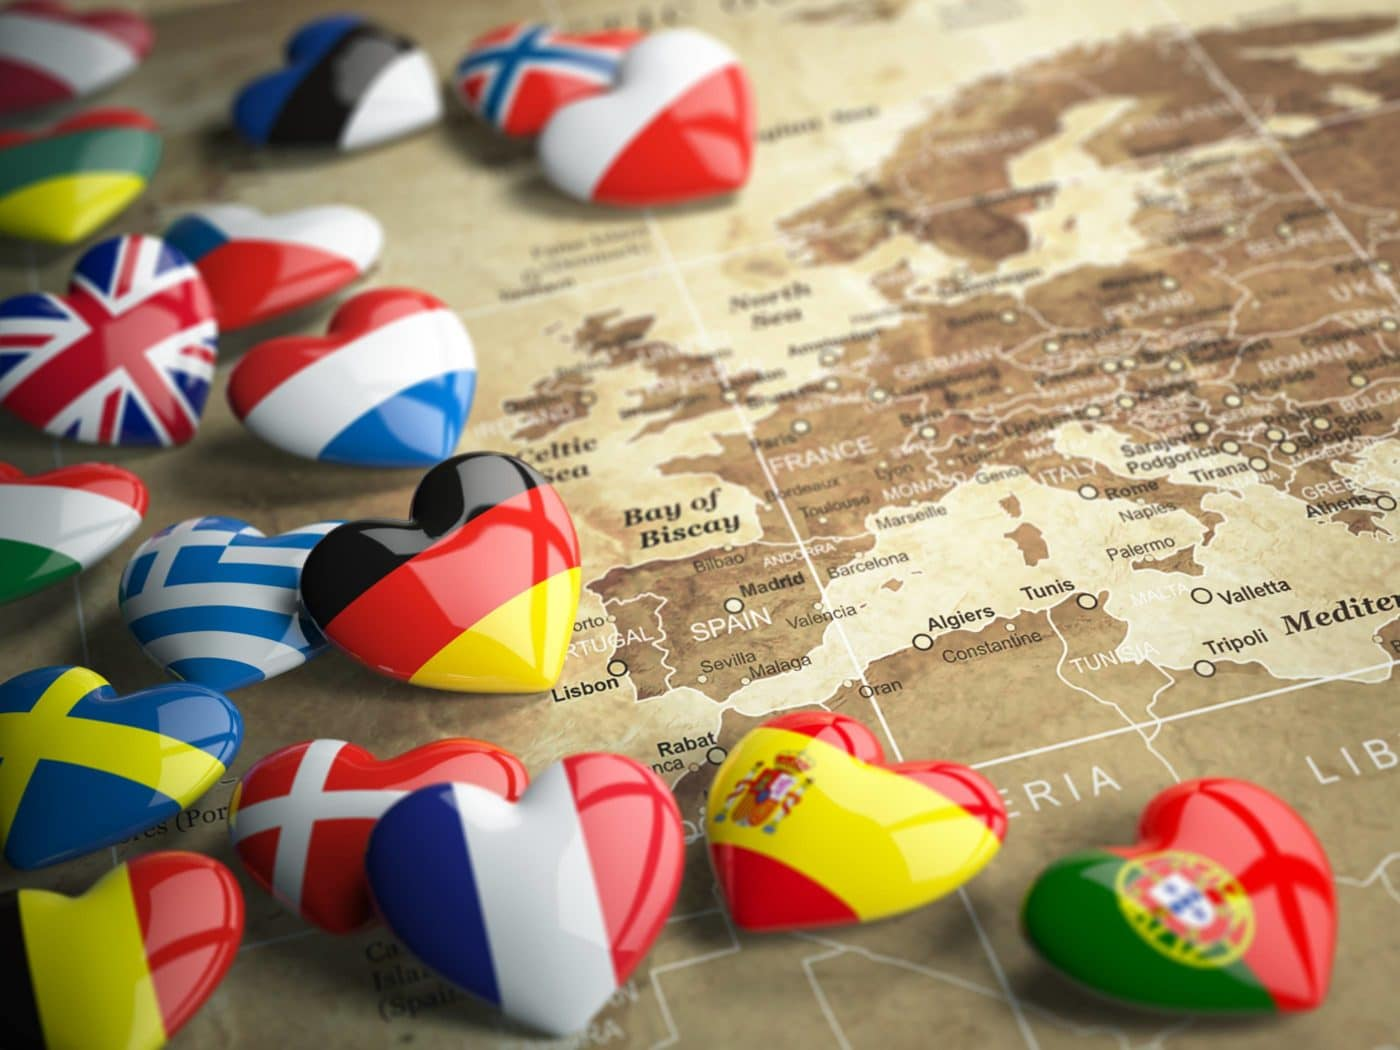 Summer 2021 in Europe: Travel, or stay home a little longer?